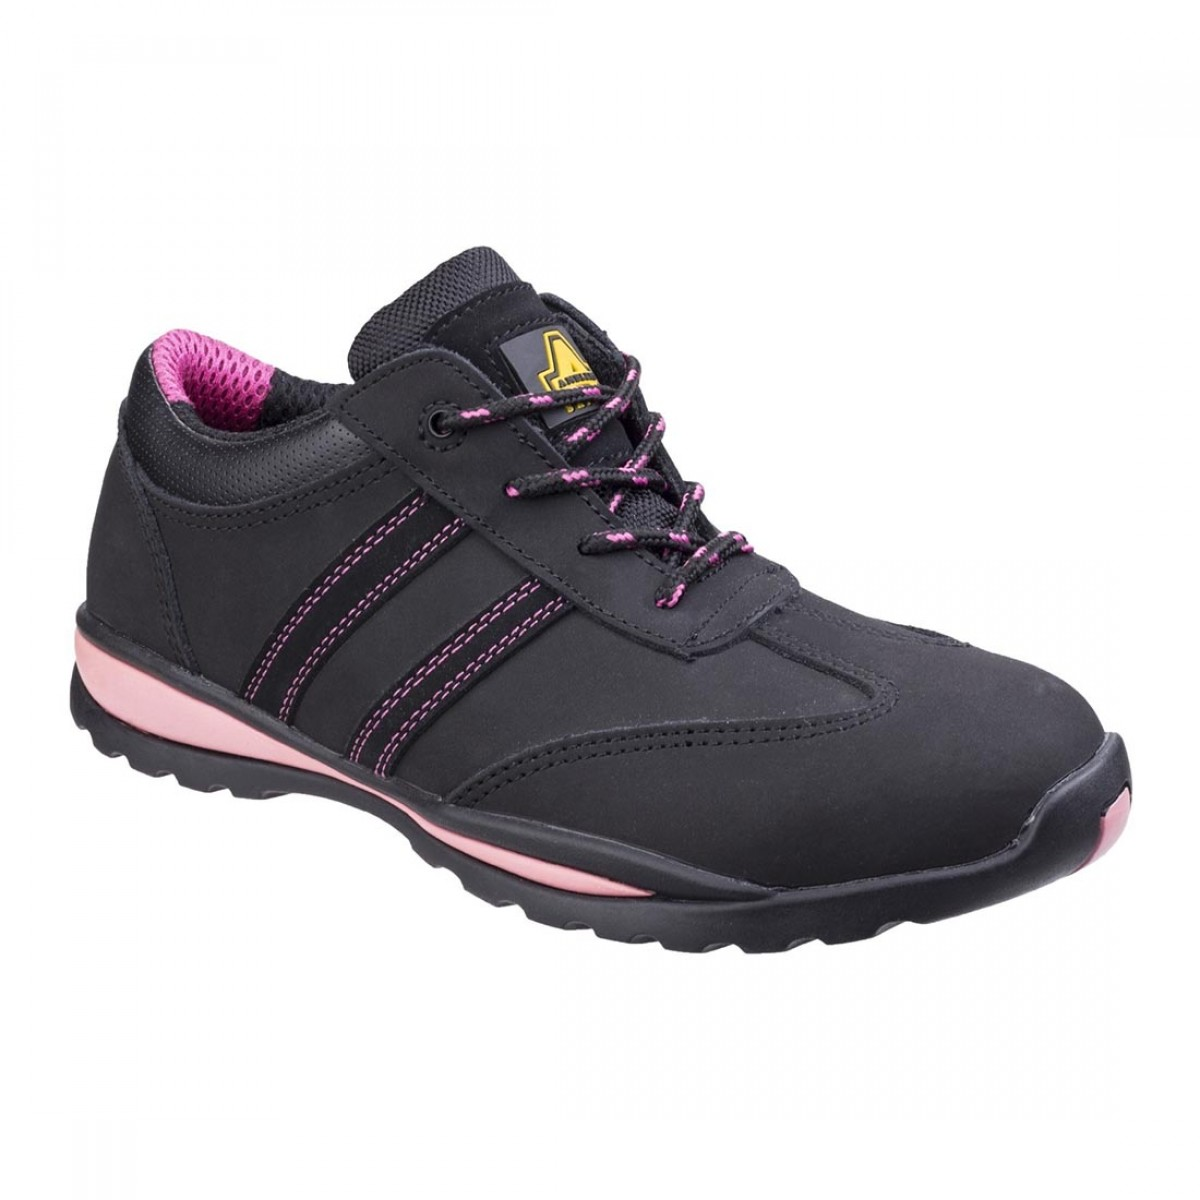 7bda43ec71d Amblers Pink FS47 Ladies Safety Trainers - Charnwood Safety Footwear